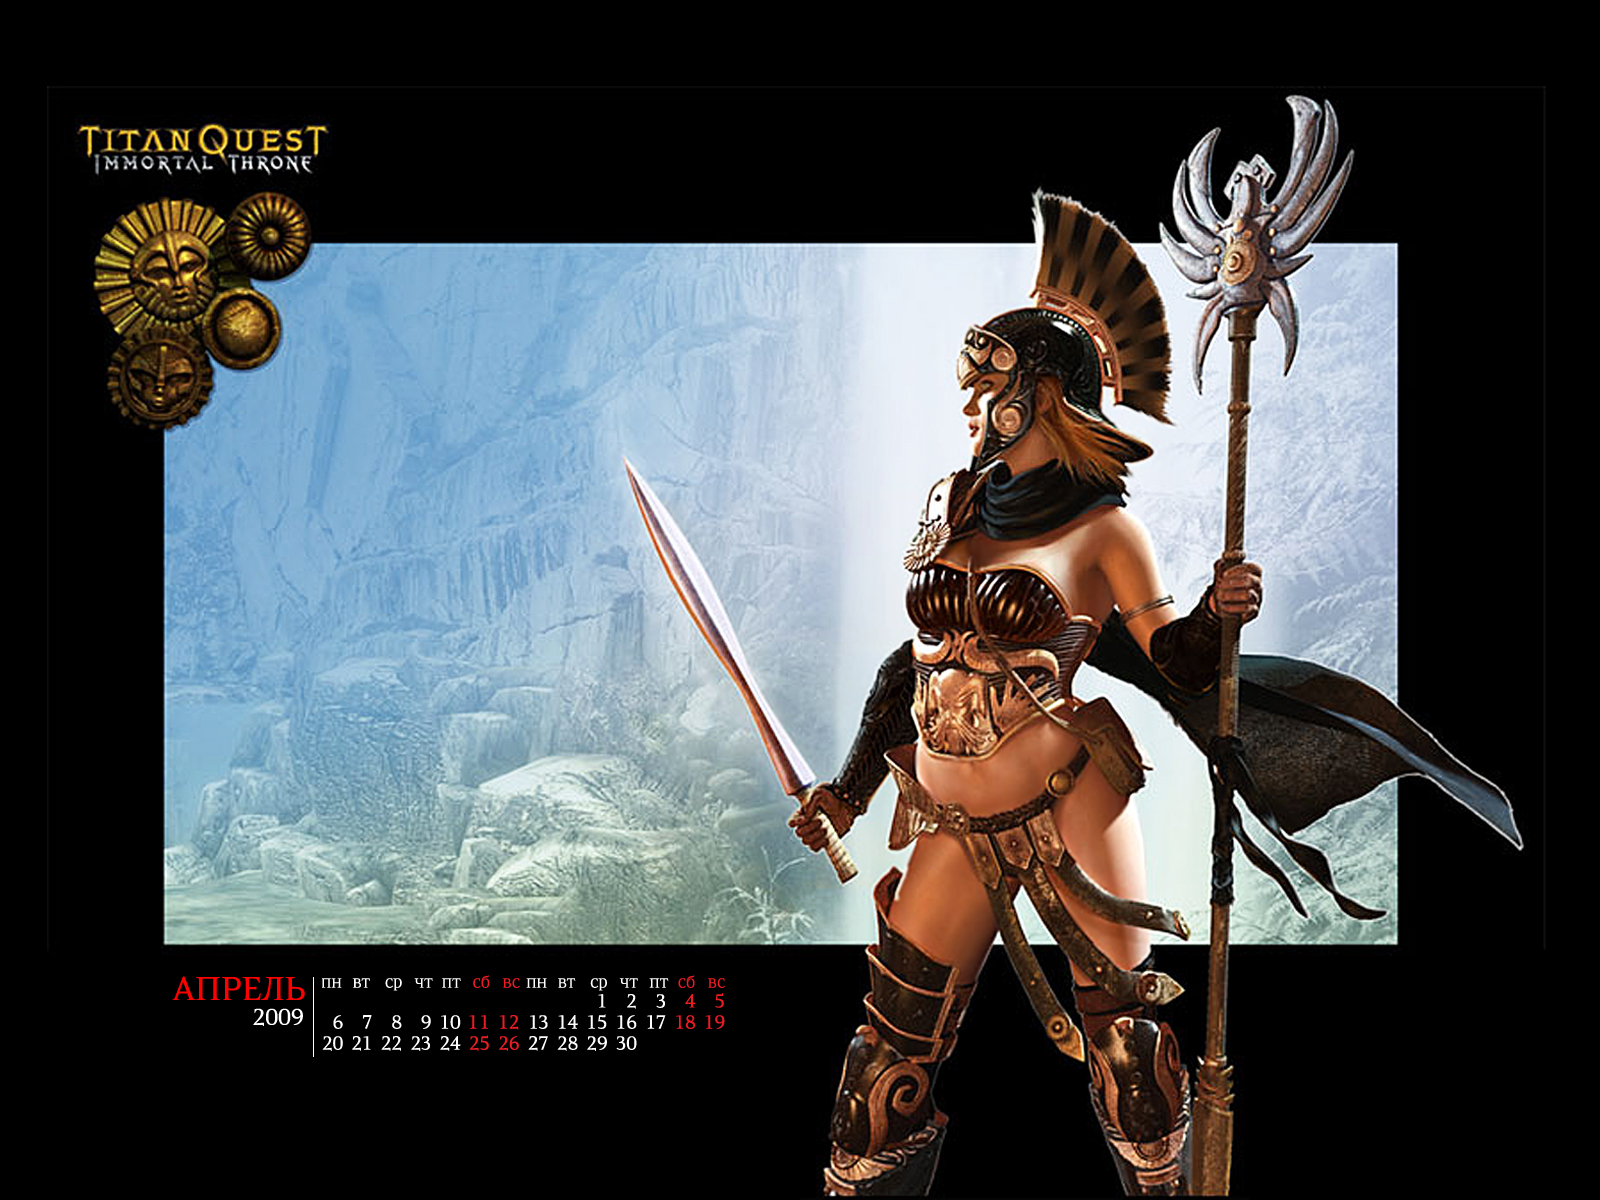 Titan quest nudes erotic streaming